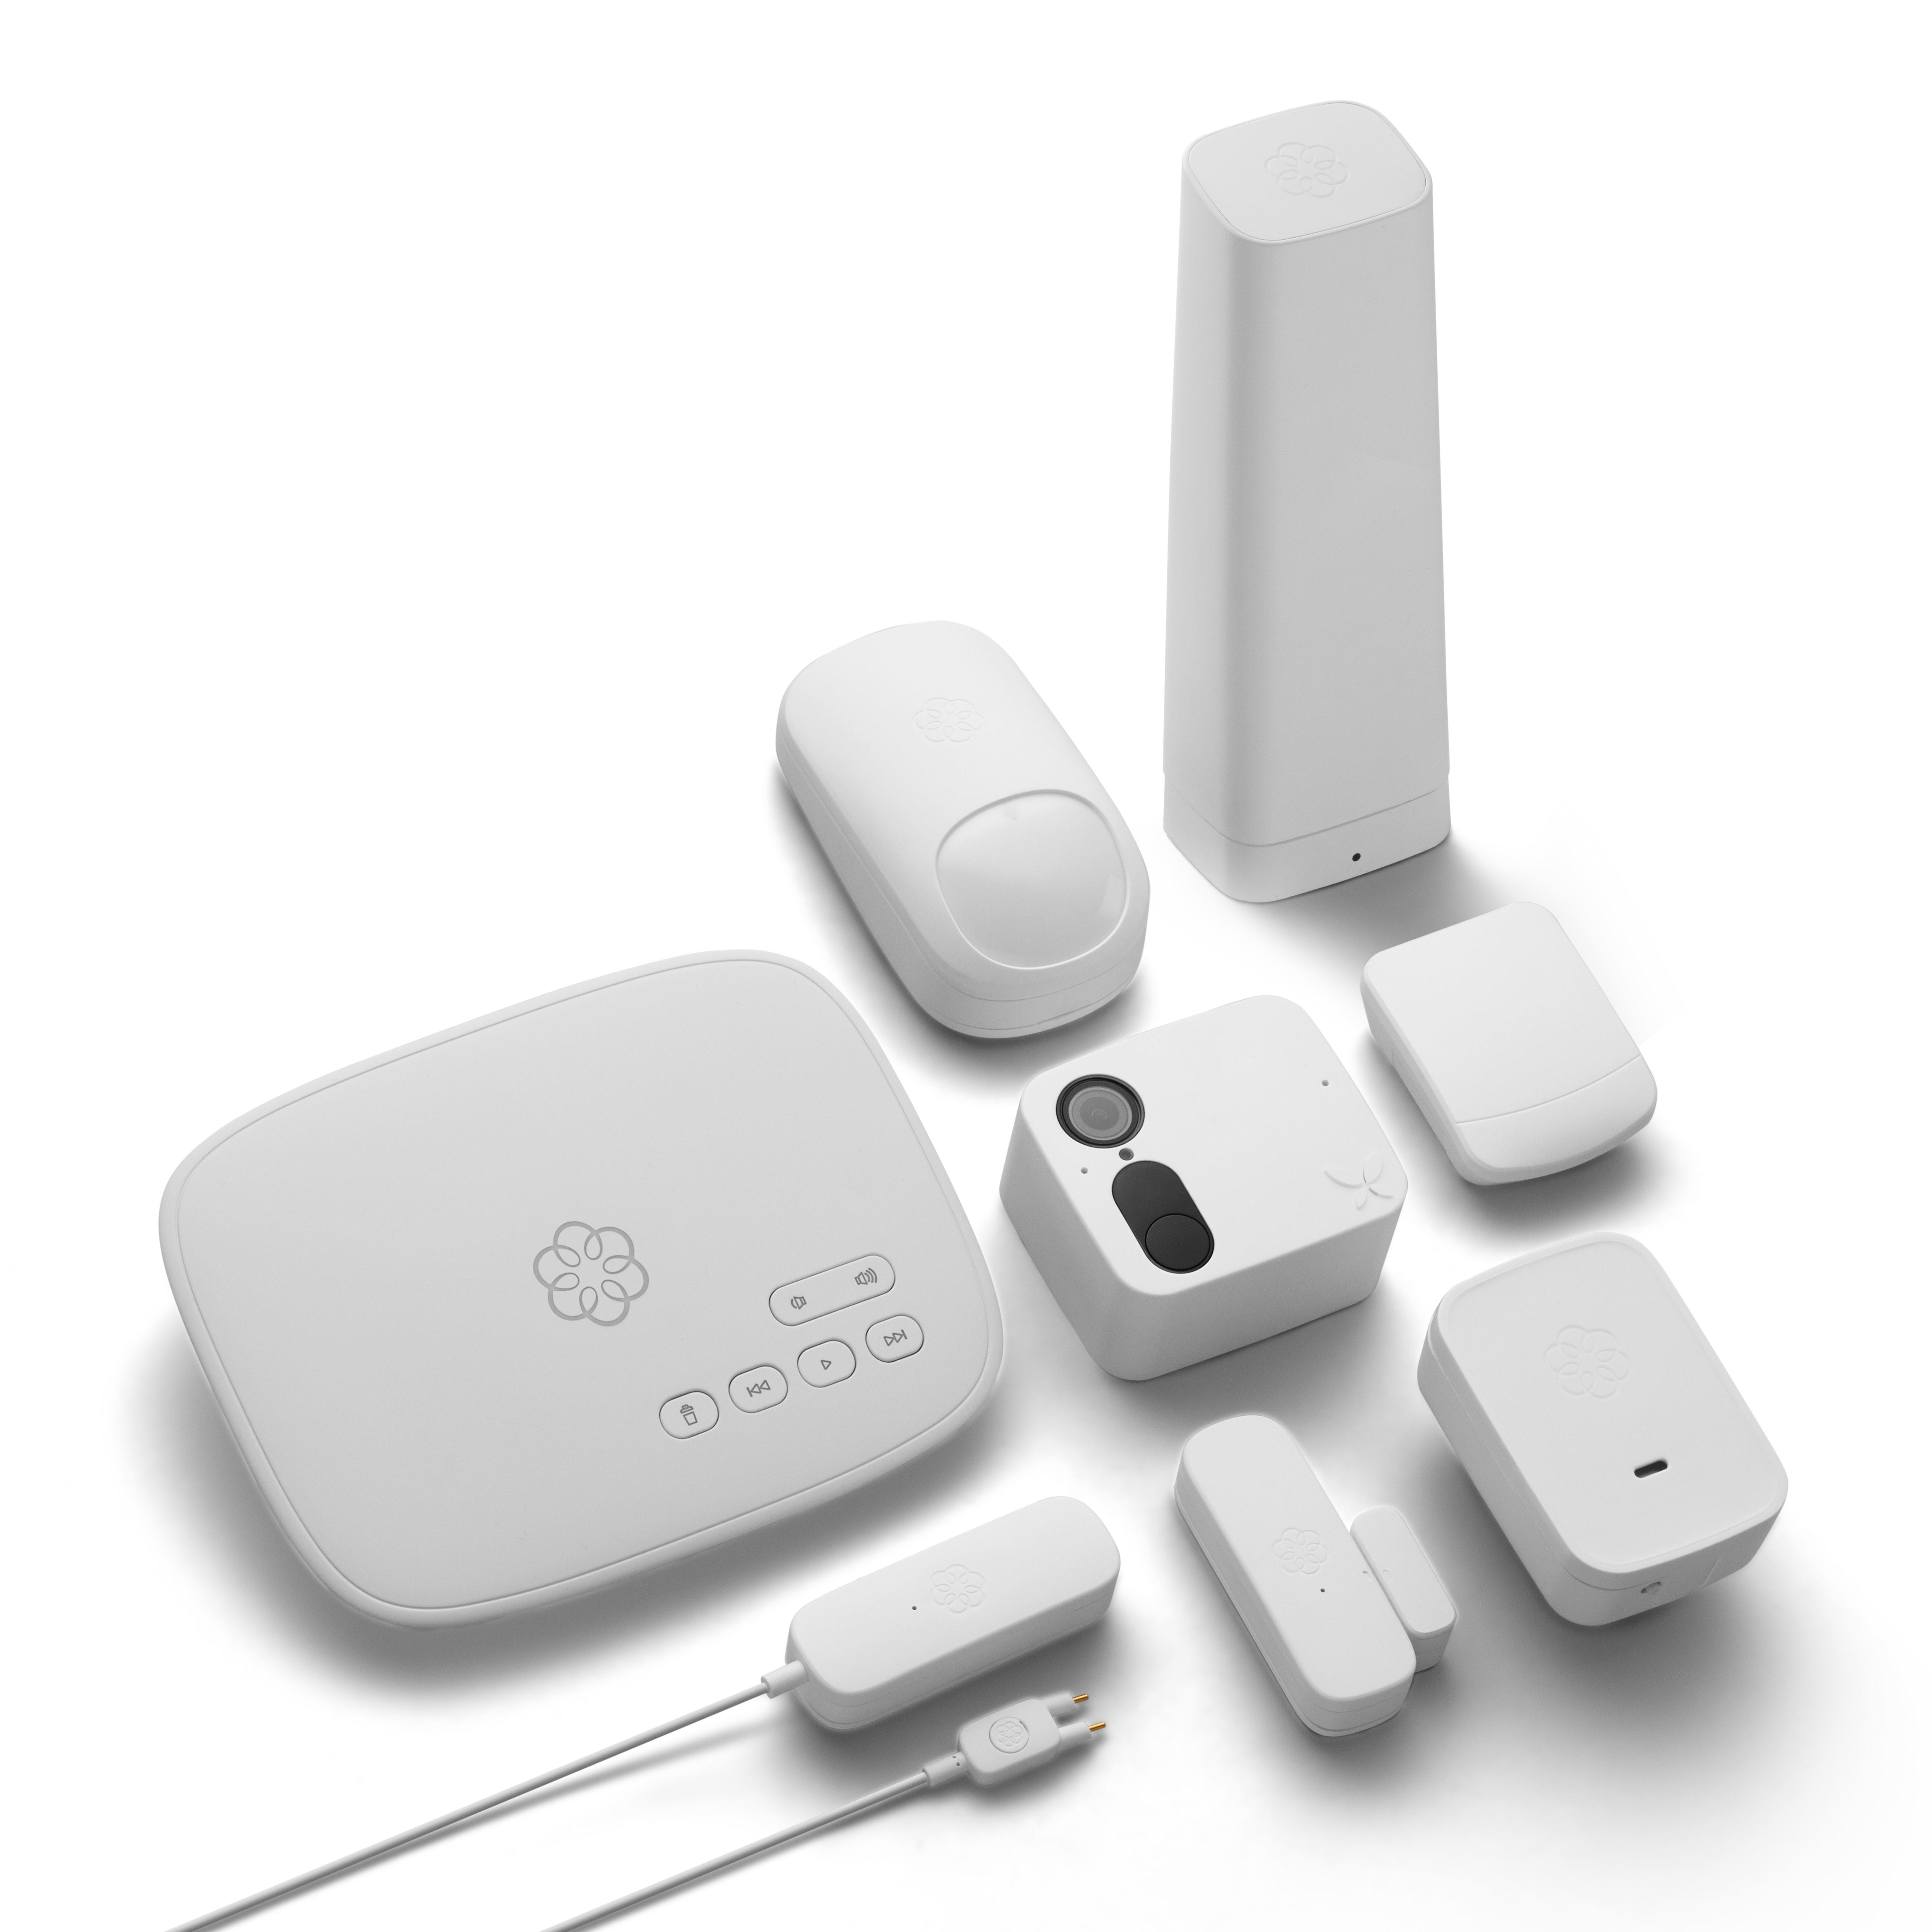 ooma-smart-security-products-with-ooma-connect-4g-tight3